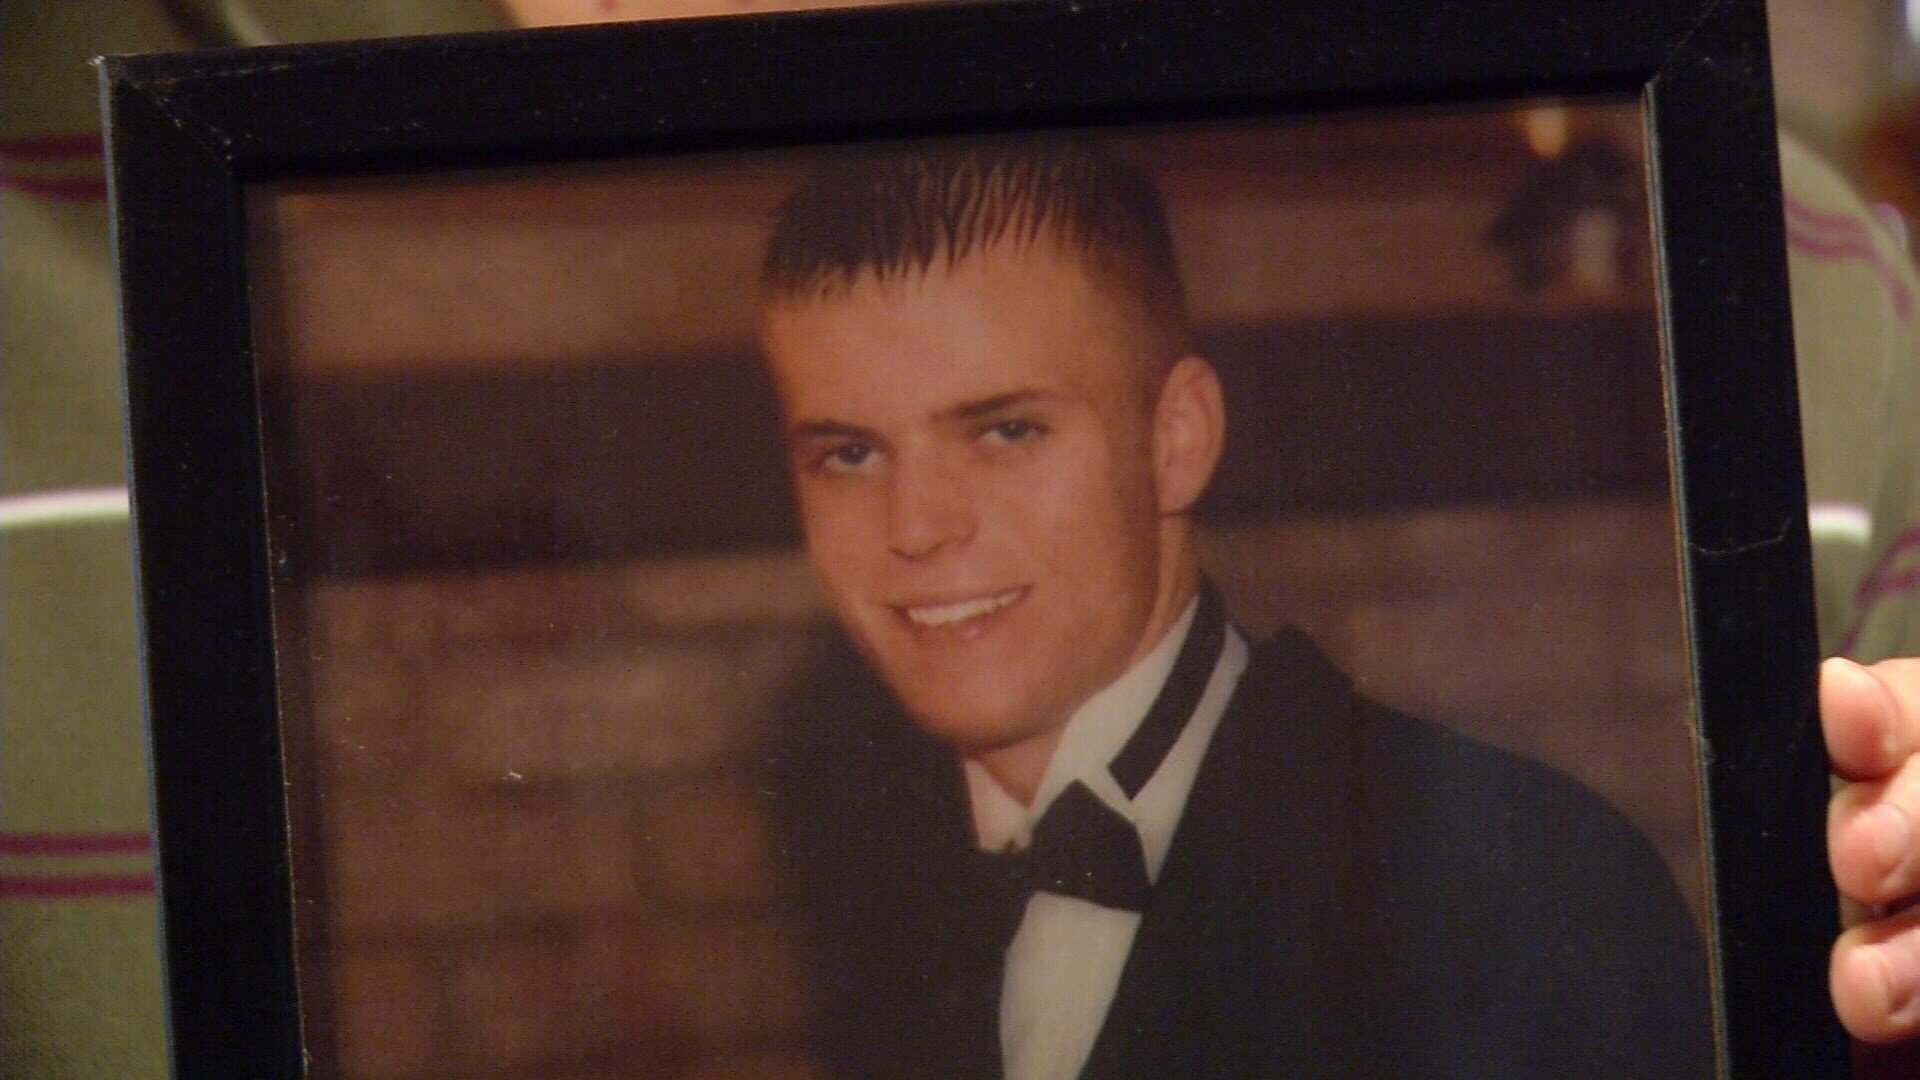 Flour Bluff High School students Steven Jackson (pictured) and Charles Avalos, Jr. were killed in the 2000 crash.